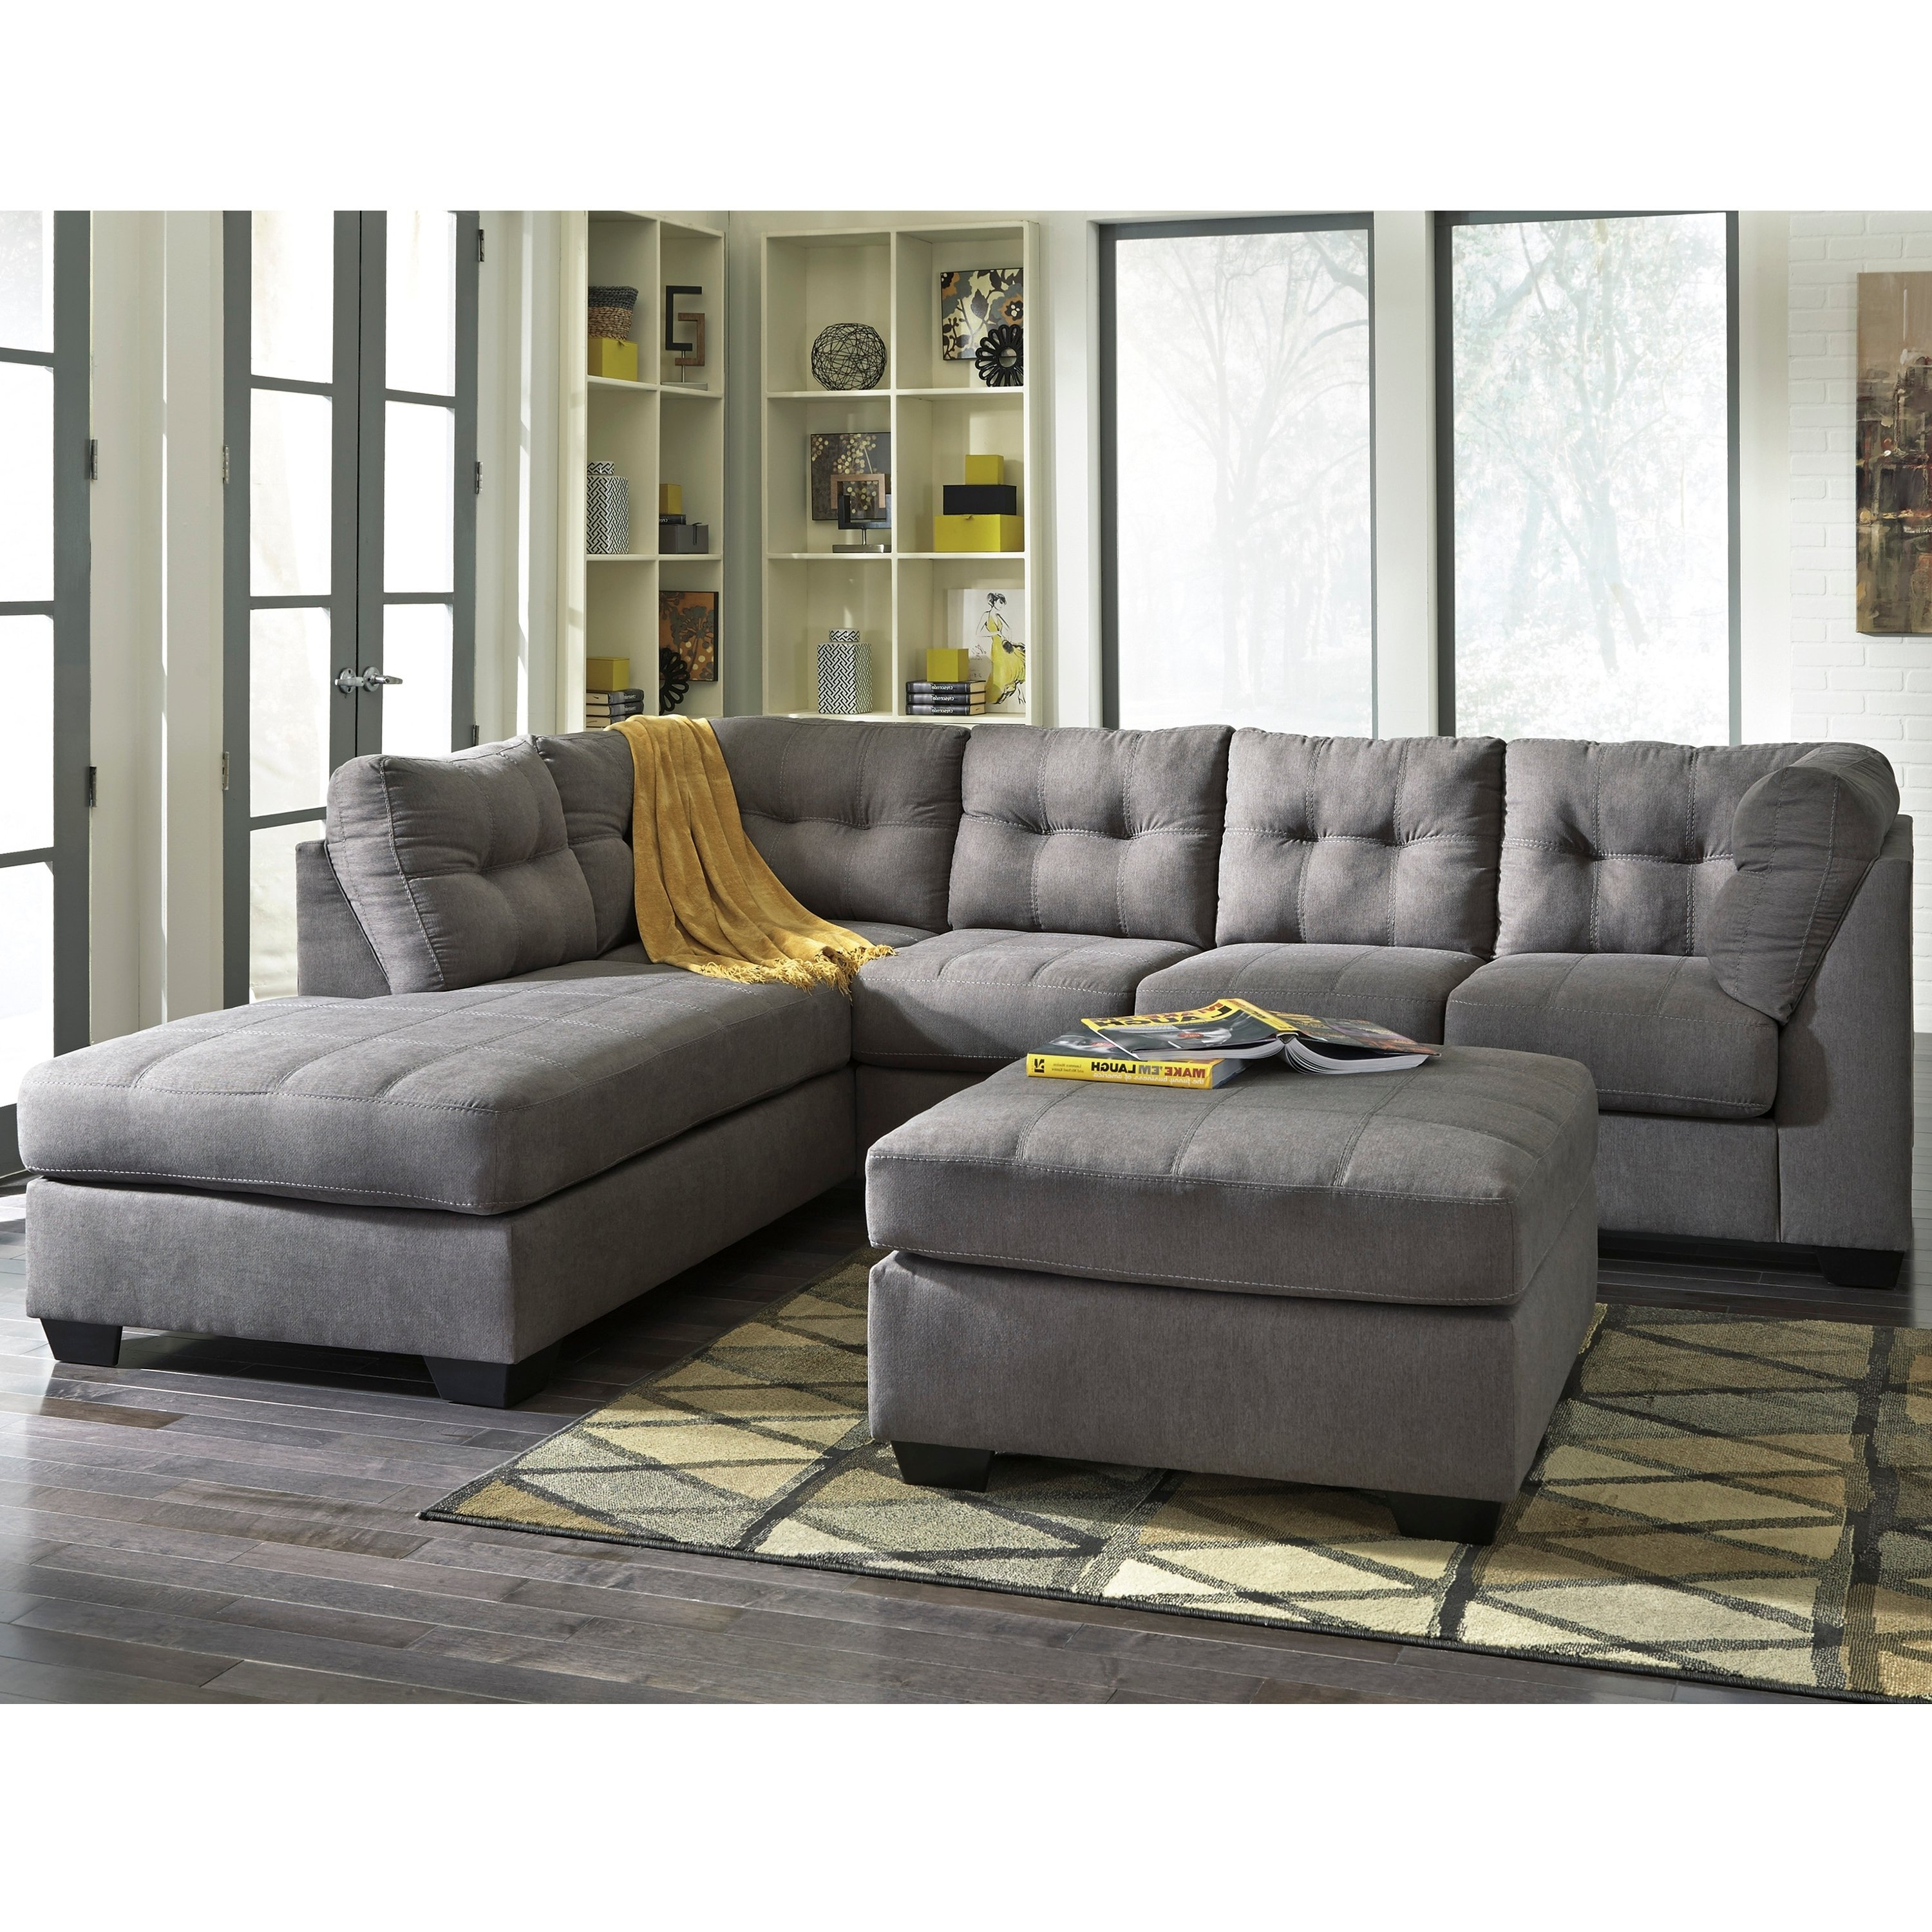 Sierra Down 3 Piece Sectionals With Laf Chaise Within Fashionable Shop Benchcraft Maier Microfiber Sectional Sofa With Right Side (View 17 of 20)